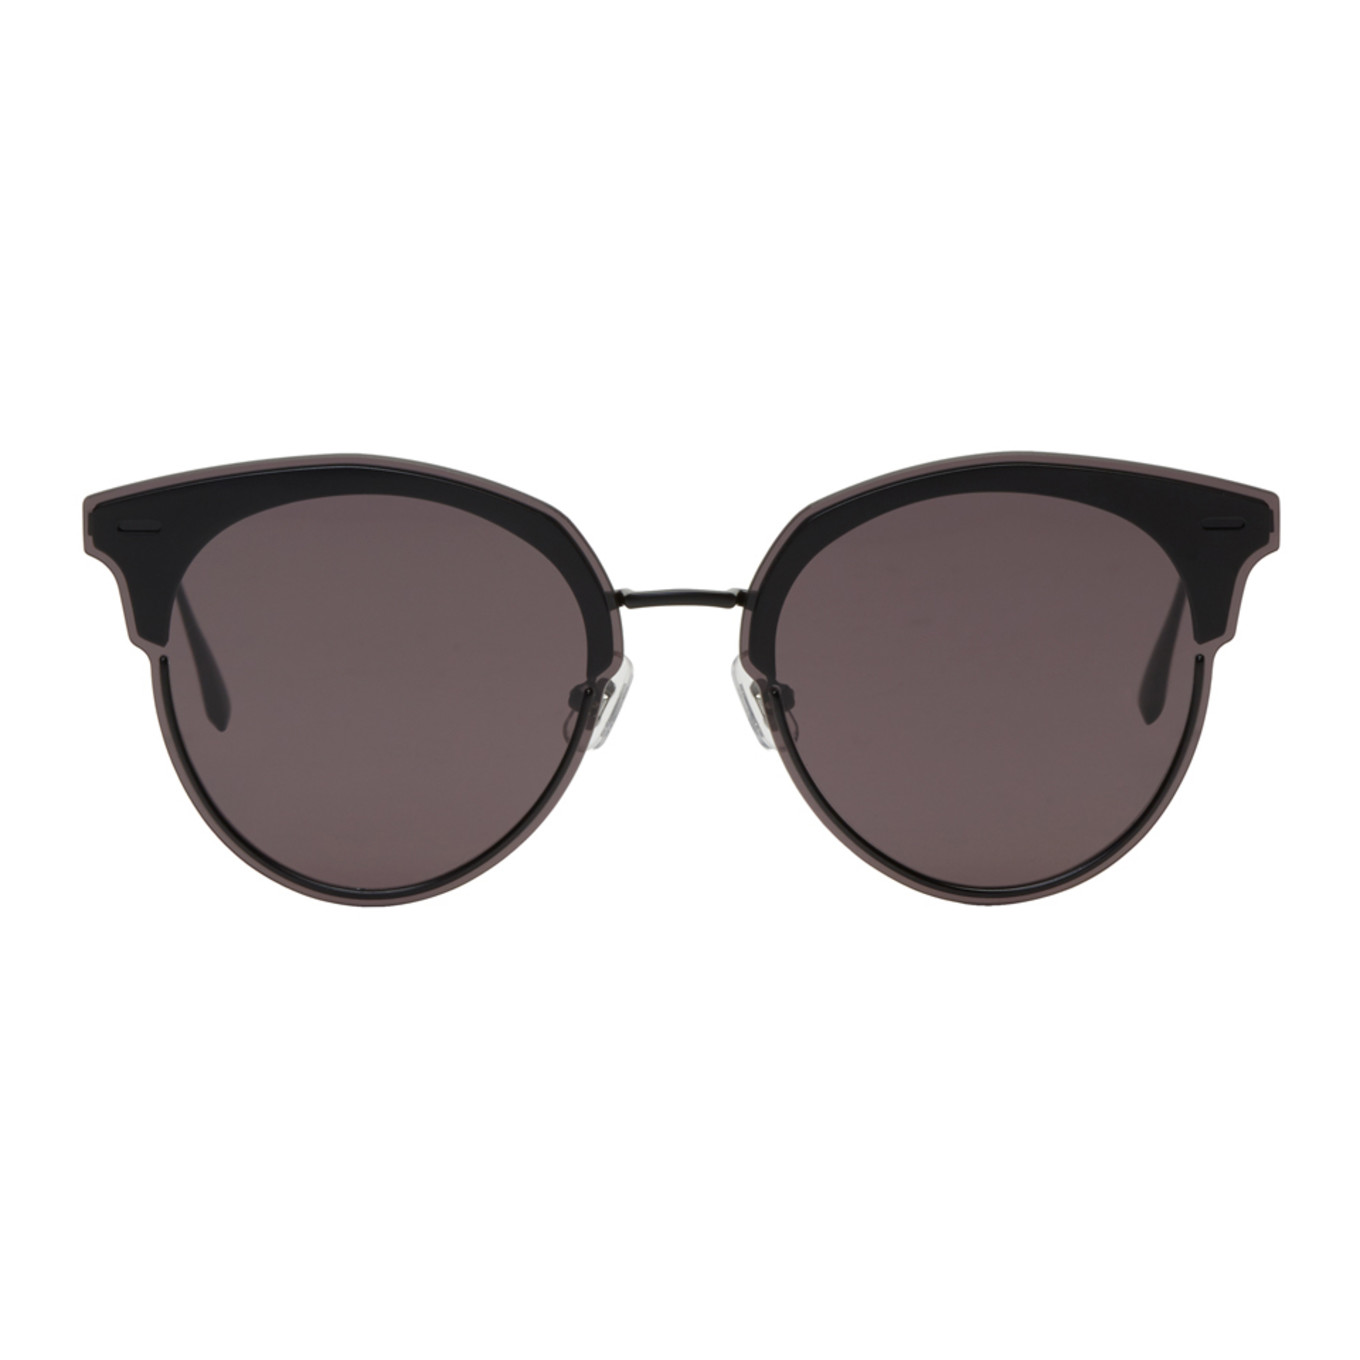 9a5e01dff7ea6 black-tool-sunglasses by gentle-monster